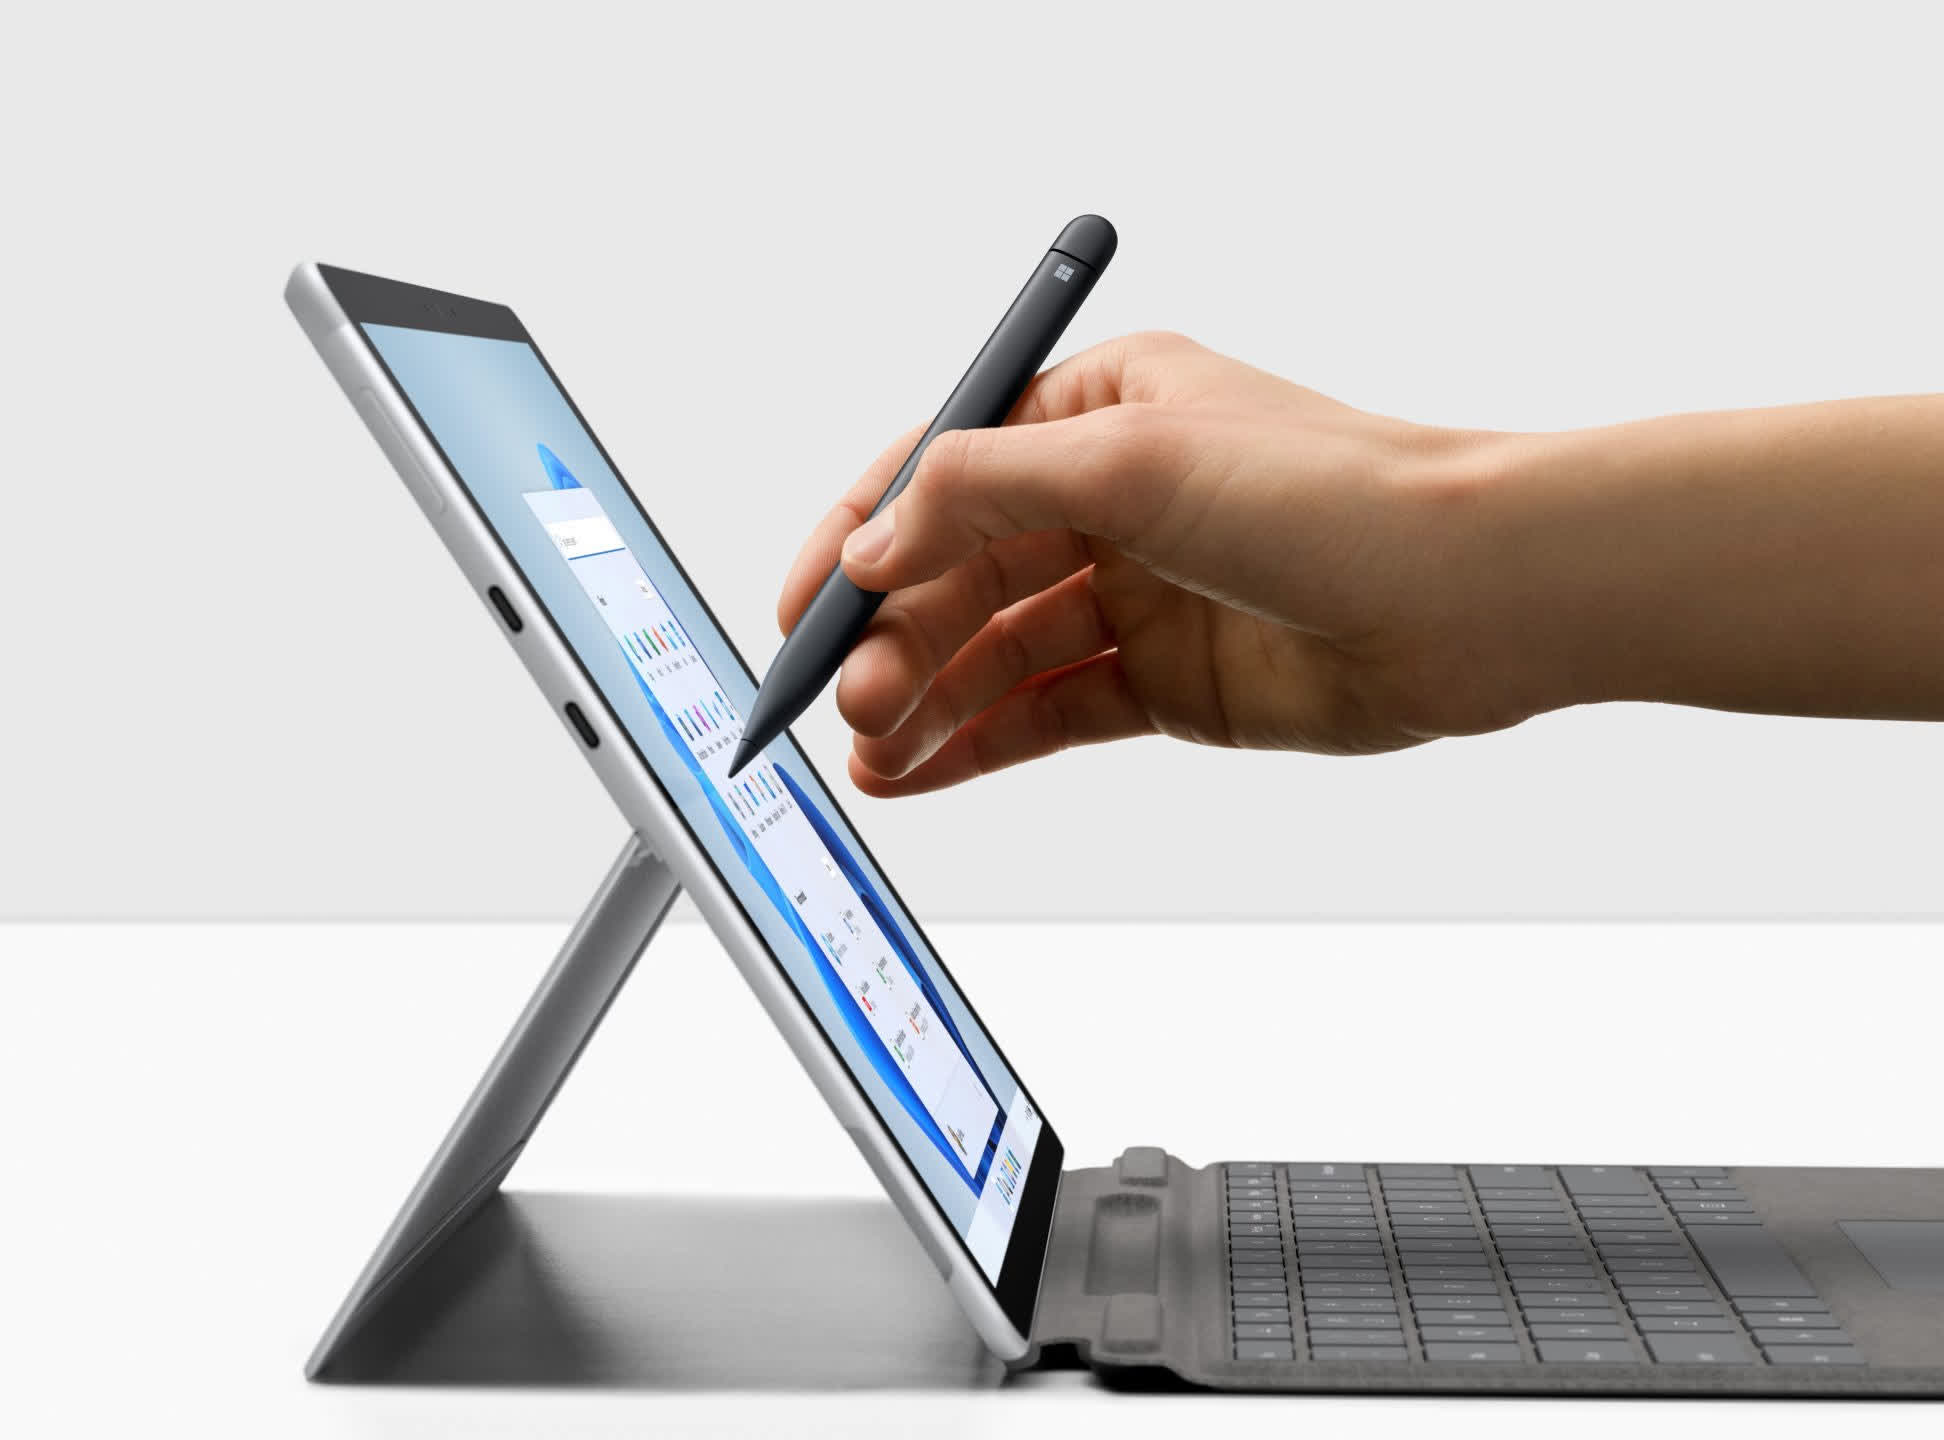 New Microsoft Surface devices and HP PCs show off ongoing PC innovation